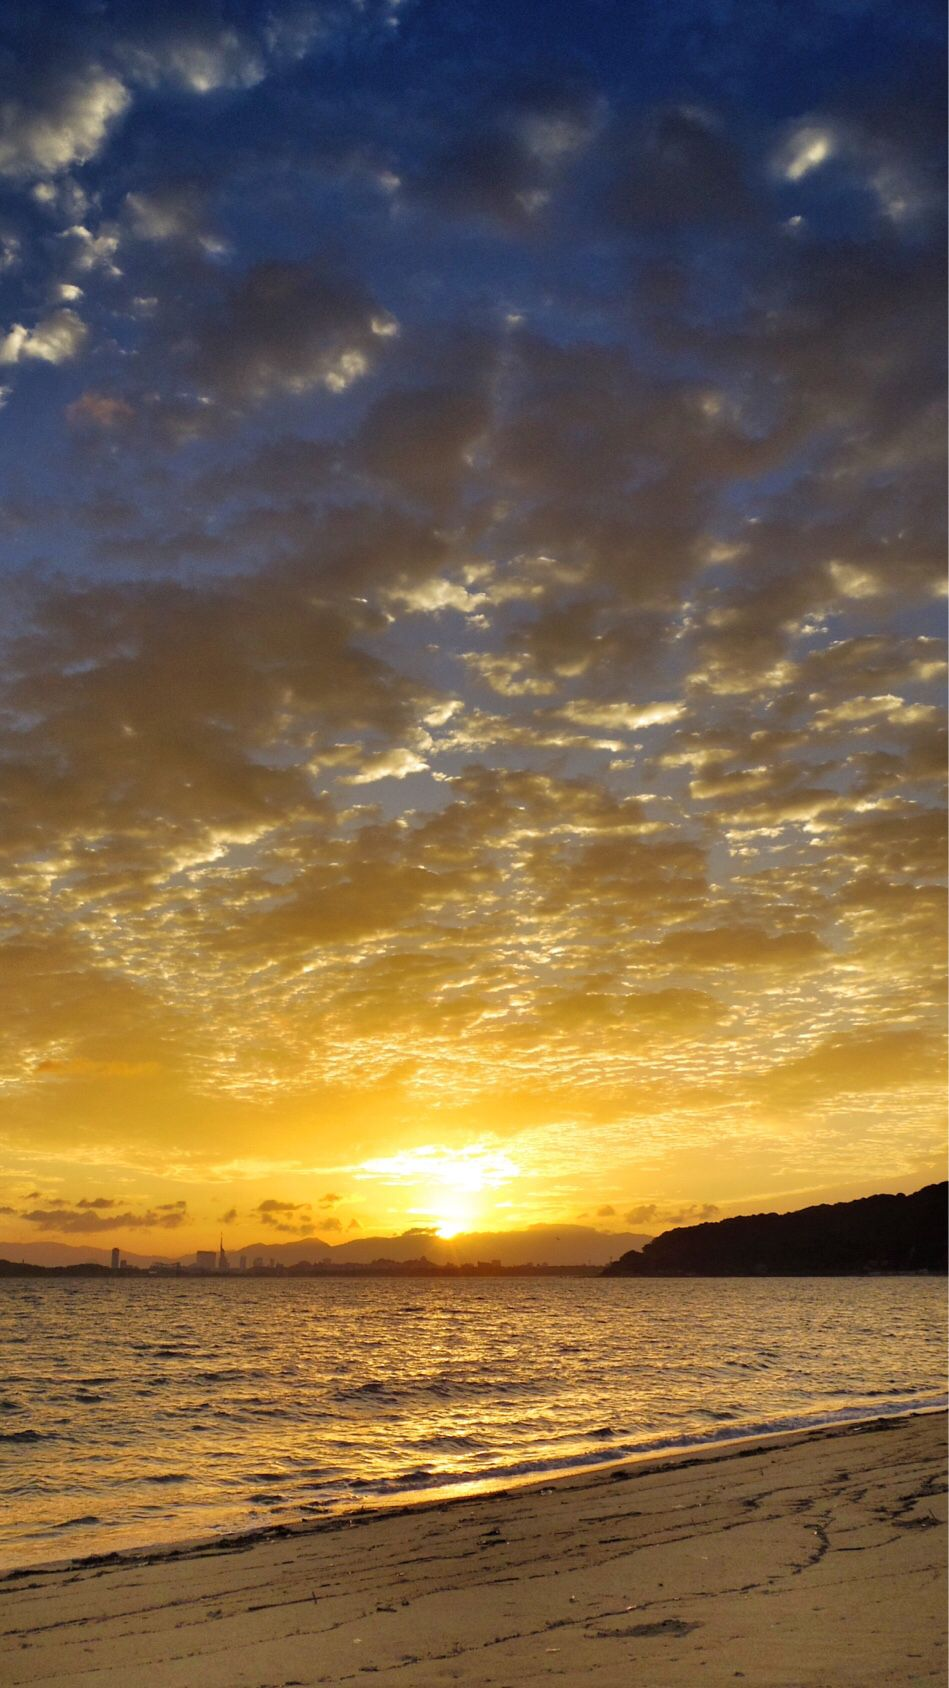 26  Sept. 6:21 博多湾日の出です。#sunrise ( Morning Now at Hakata bay in Japan )